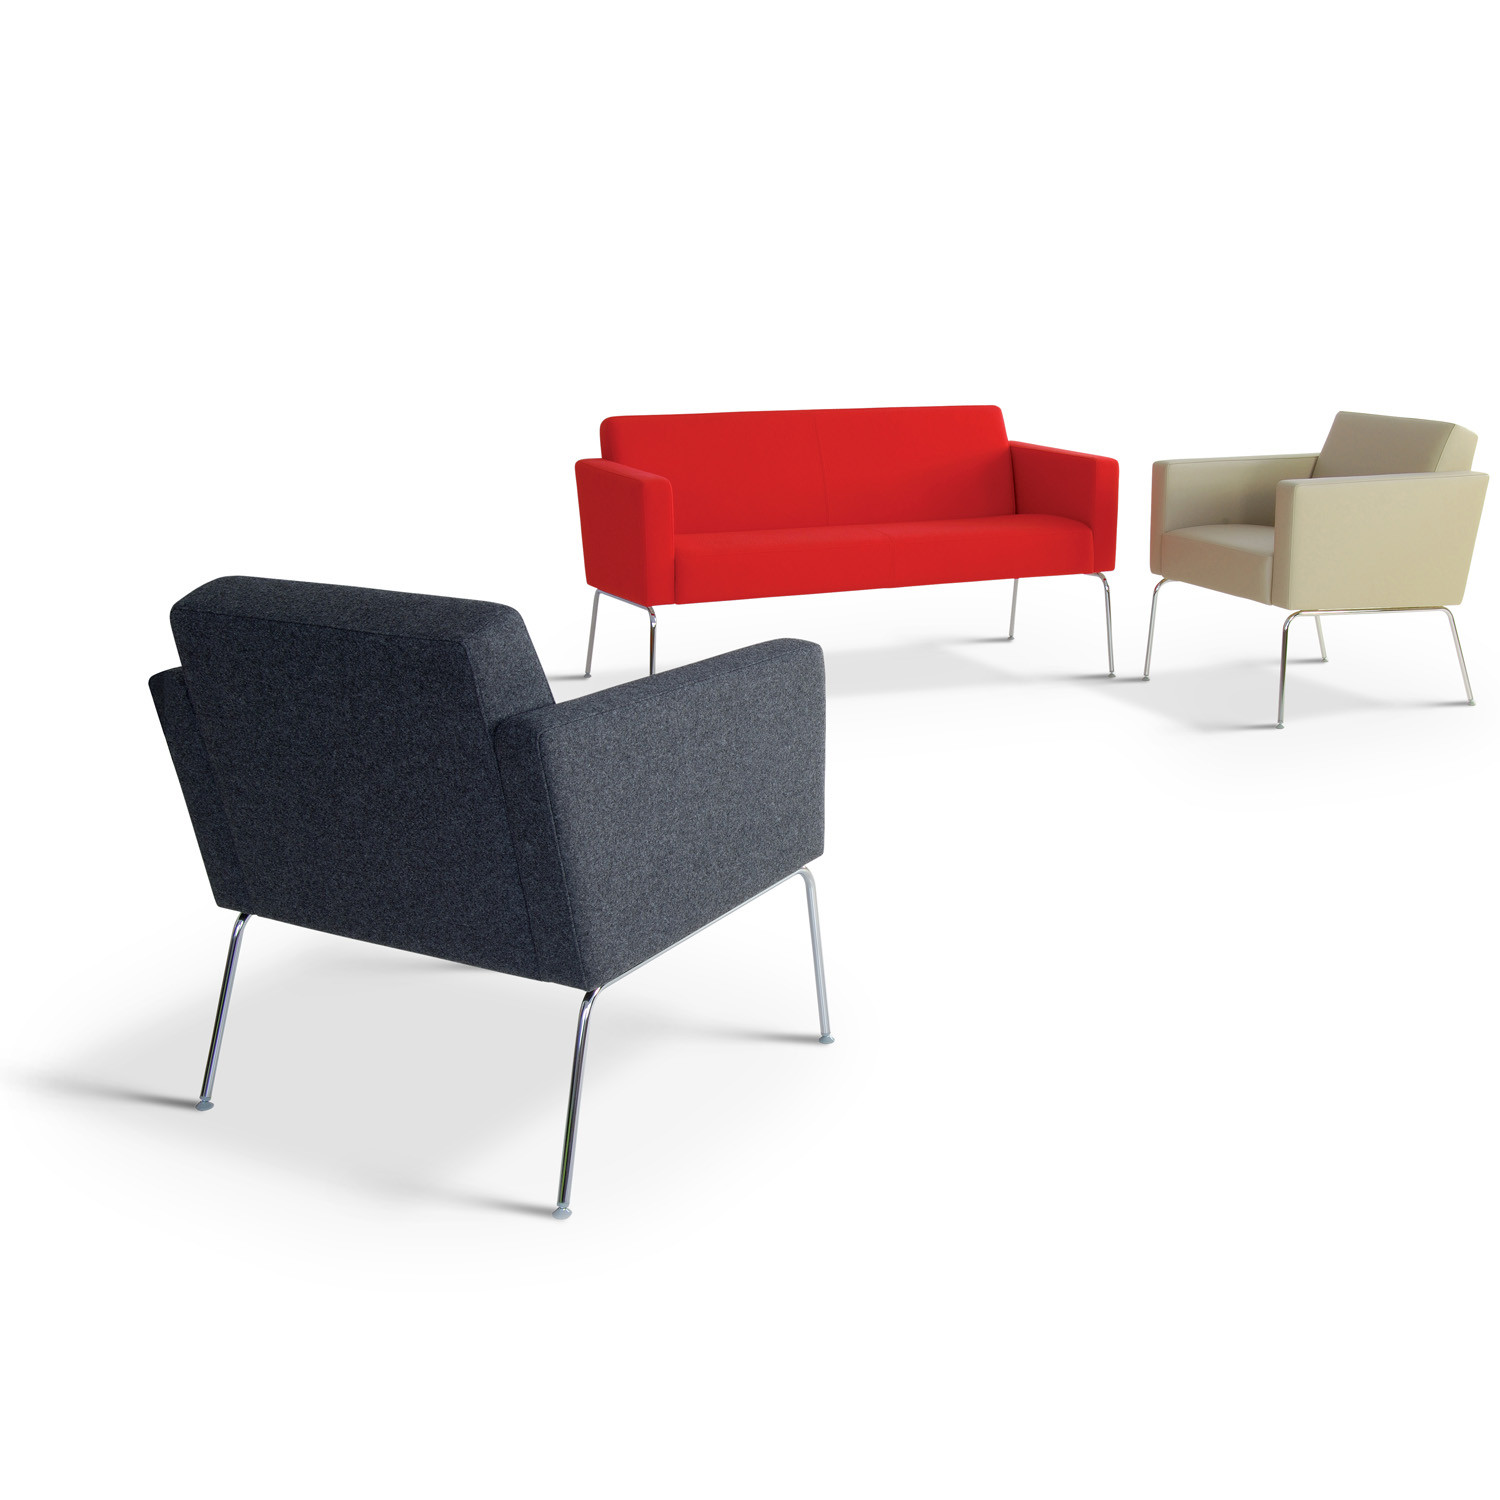 HM66 Armchairs and HM66 Sofa